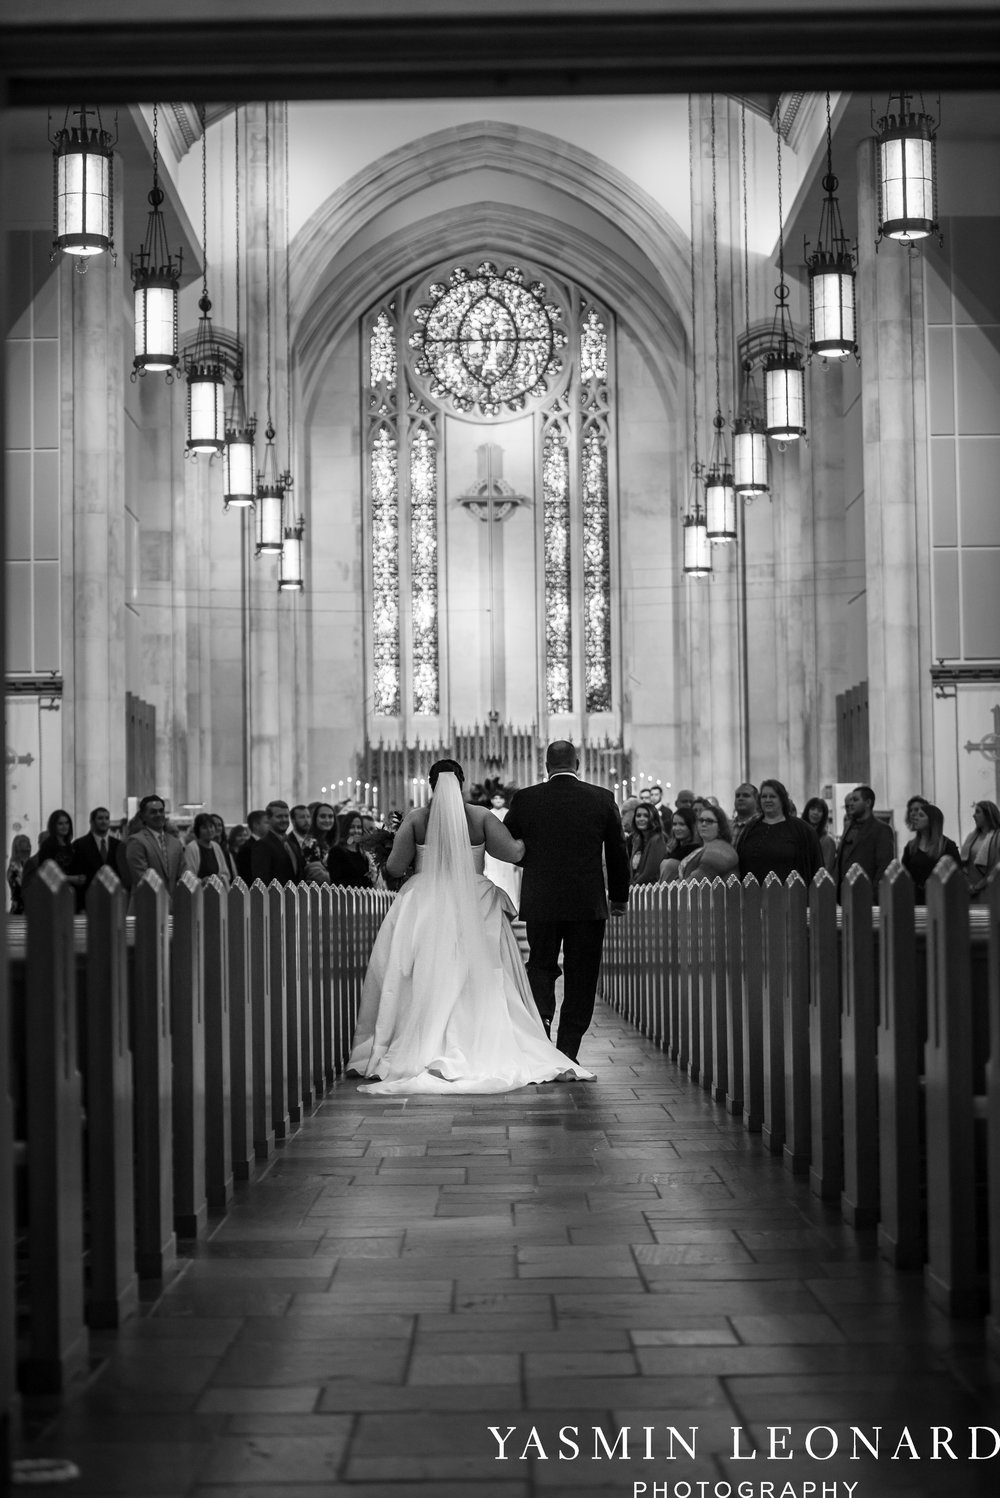 Wesley Memorial United Methodist Church - Old Homeplace Winery - High Point Weddings - High Point Wedding Photographer - NC Weddings - NC Barn Venue - Yasmin Leonard Photography-14.jpg